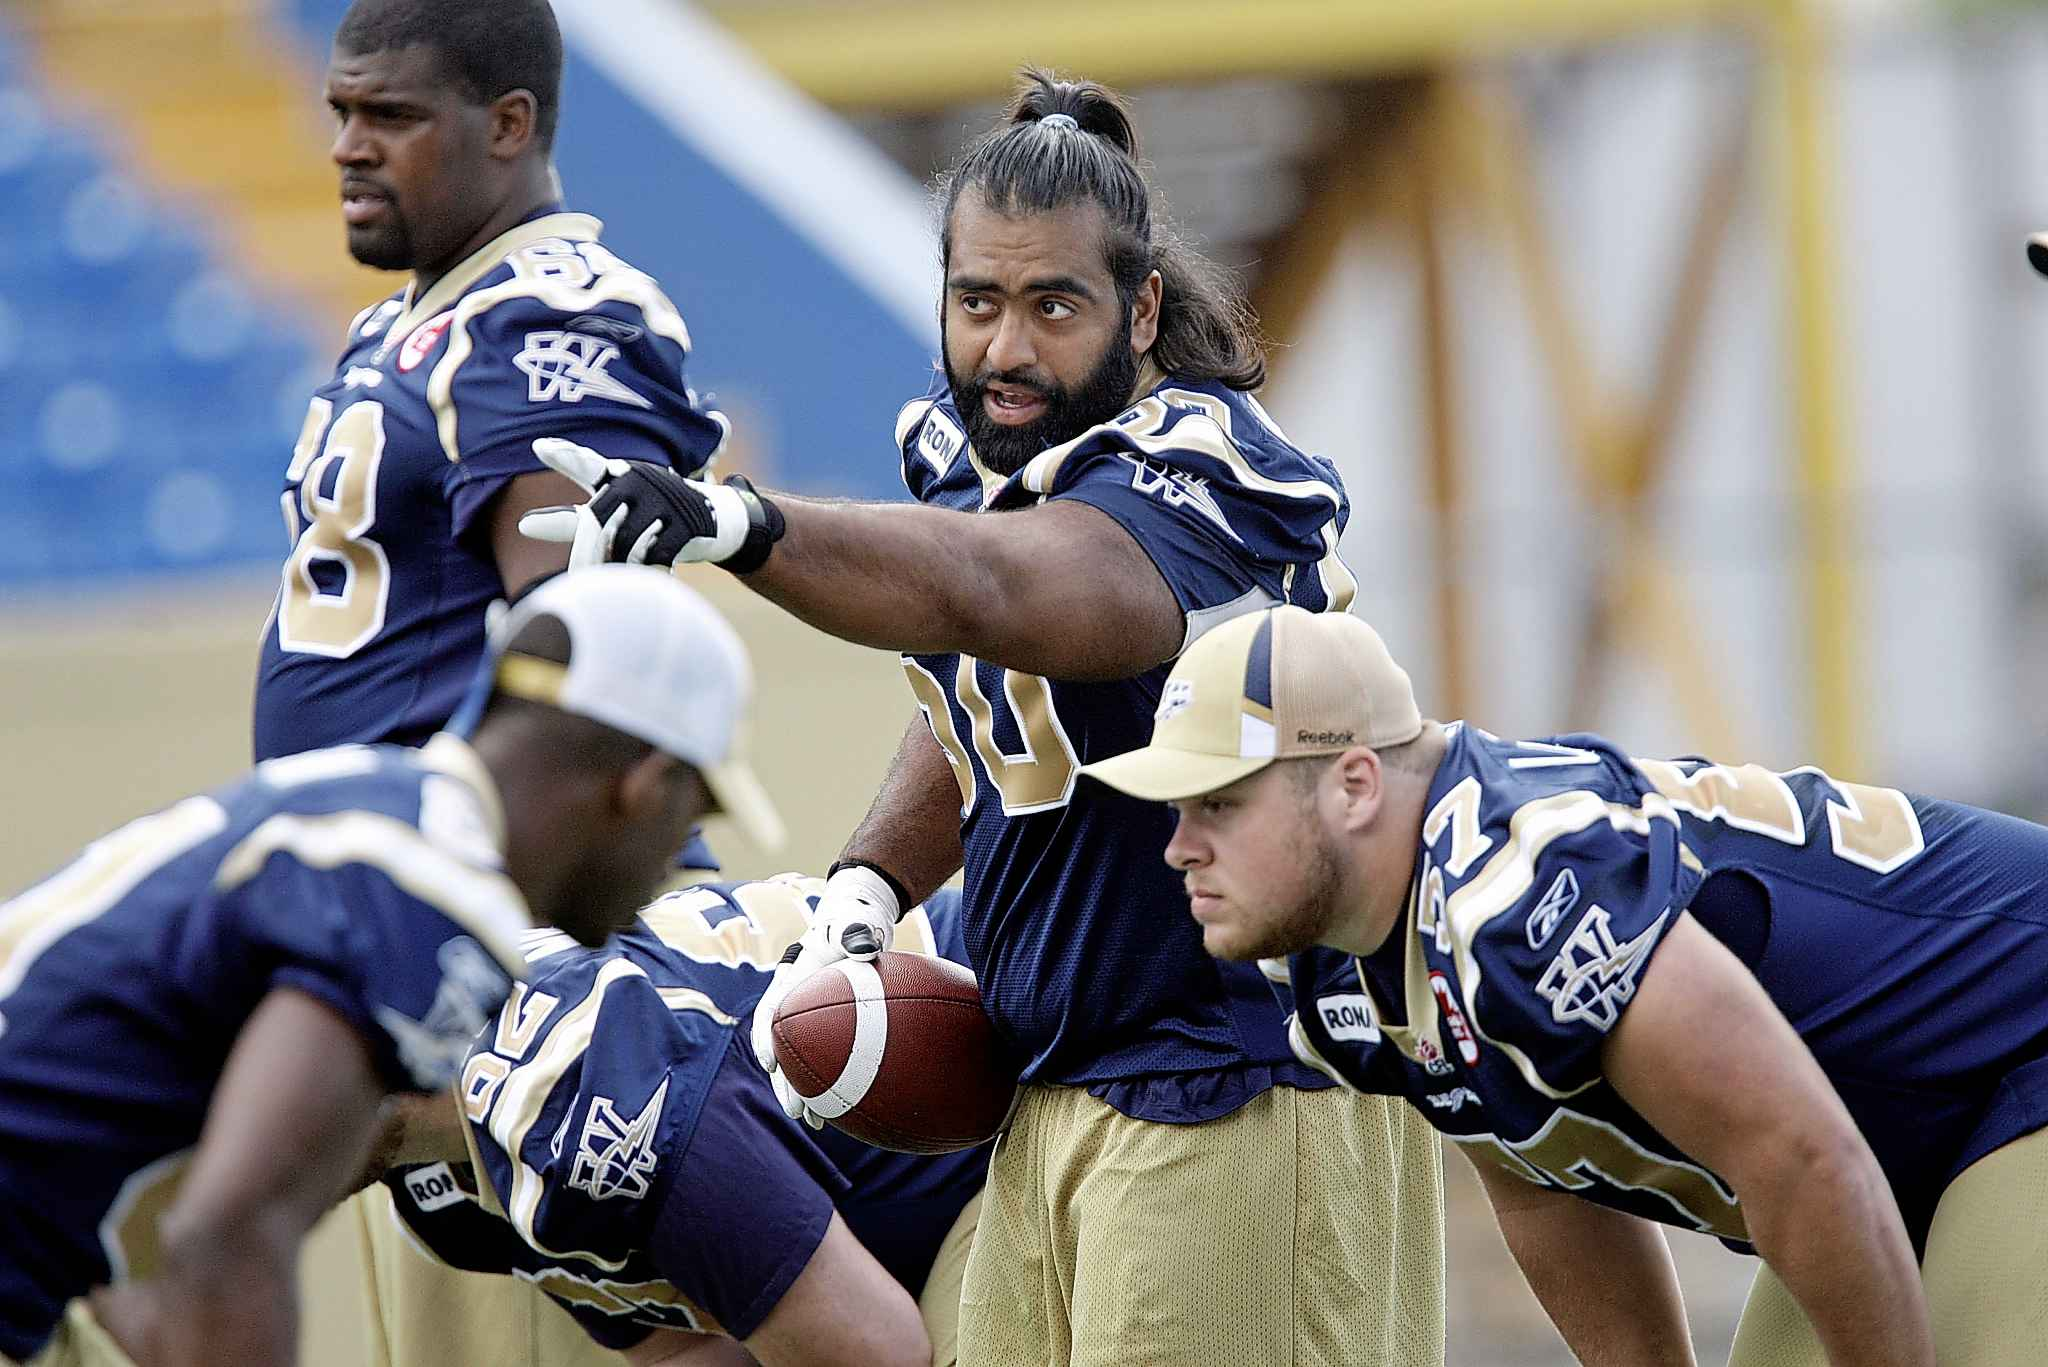 KEN GIGLIOTTI / WINNIPEG FREE PRESS FILES</p><p> Khan, seen here in 2010, resumed his career in 2008 with the Bombers after a battle with Crohn's disease. He announced his retirement in early 2012.</p>